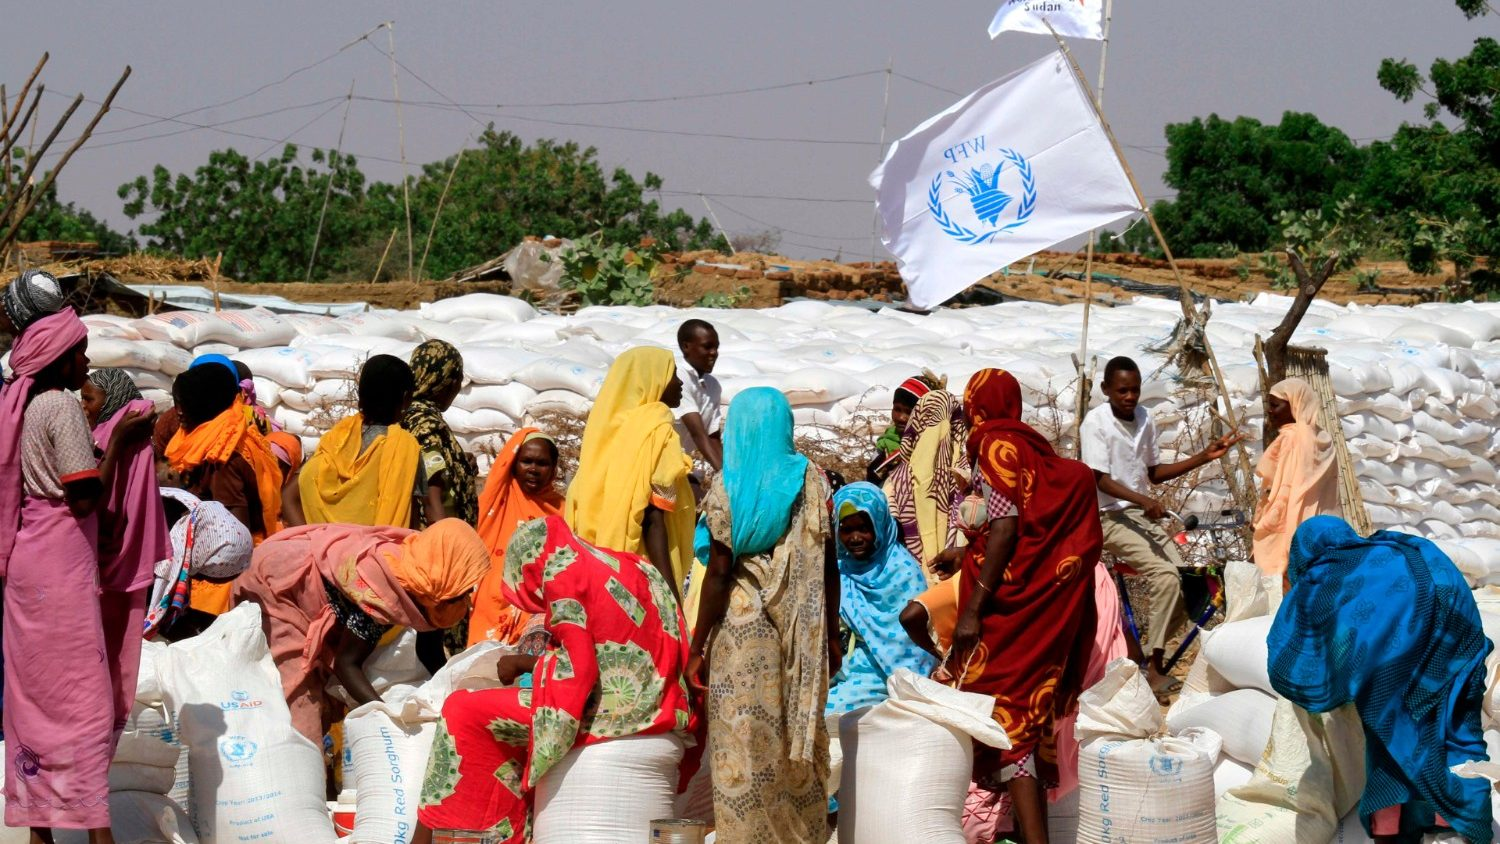 Unrest continues to blight Horn of Africa regions - Vatican News